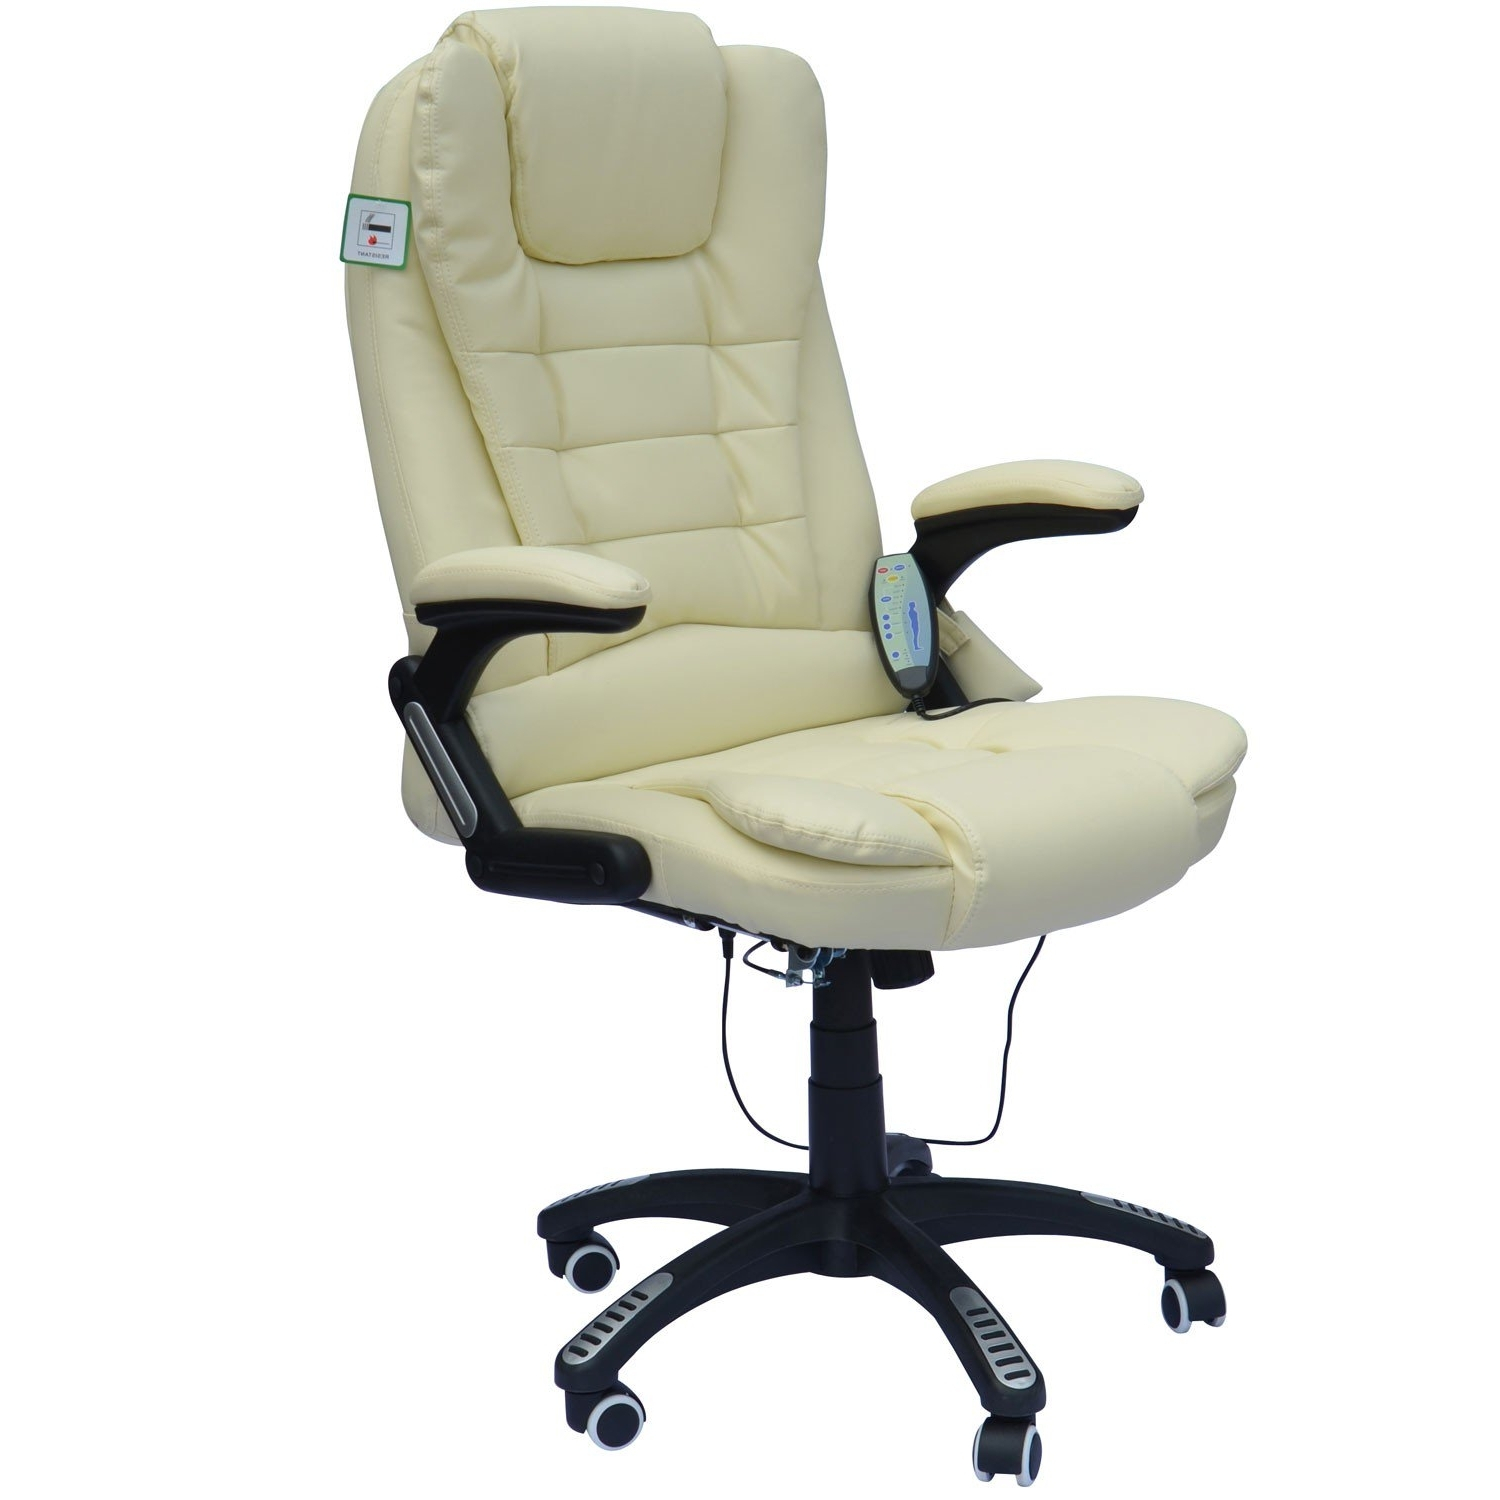 Executive Office Chairs With Massage/heat Pertaining To Most Up To Date Homcom Massage Chair Office Computer Executive Ergonomic Heated (View 5 of 20)